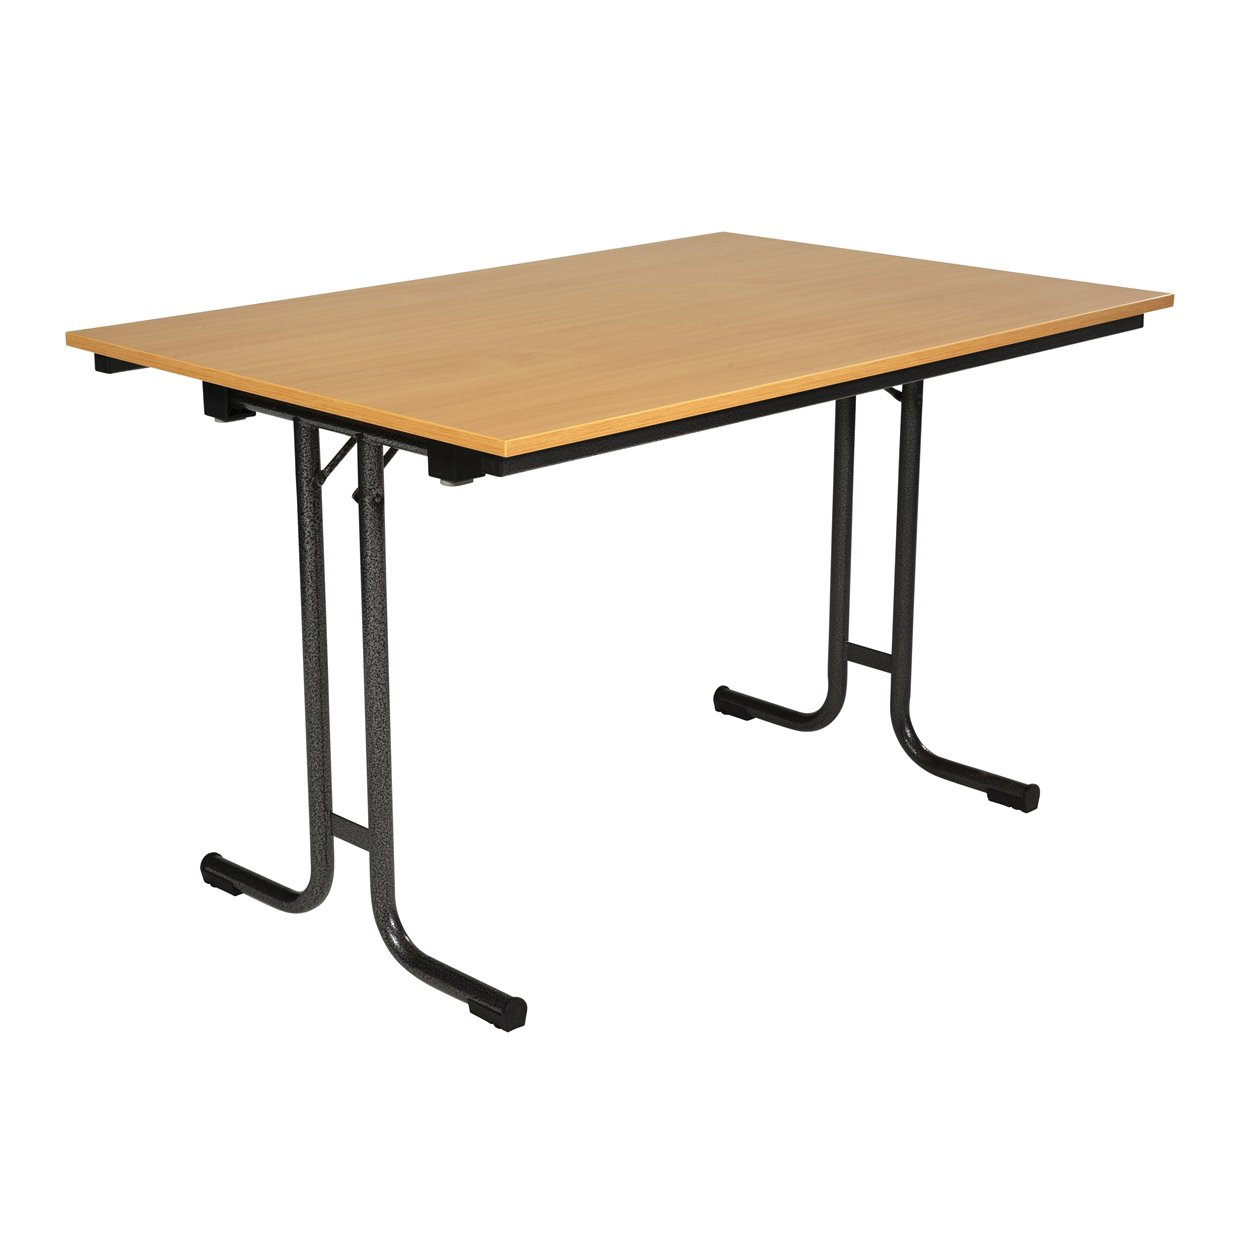 T-Table, rectangular